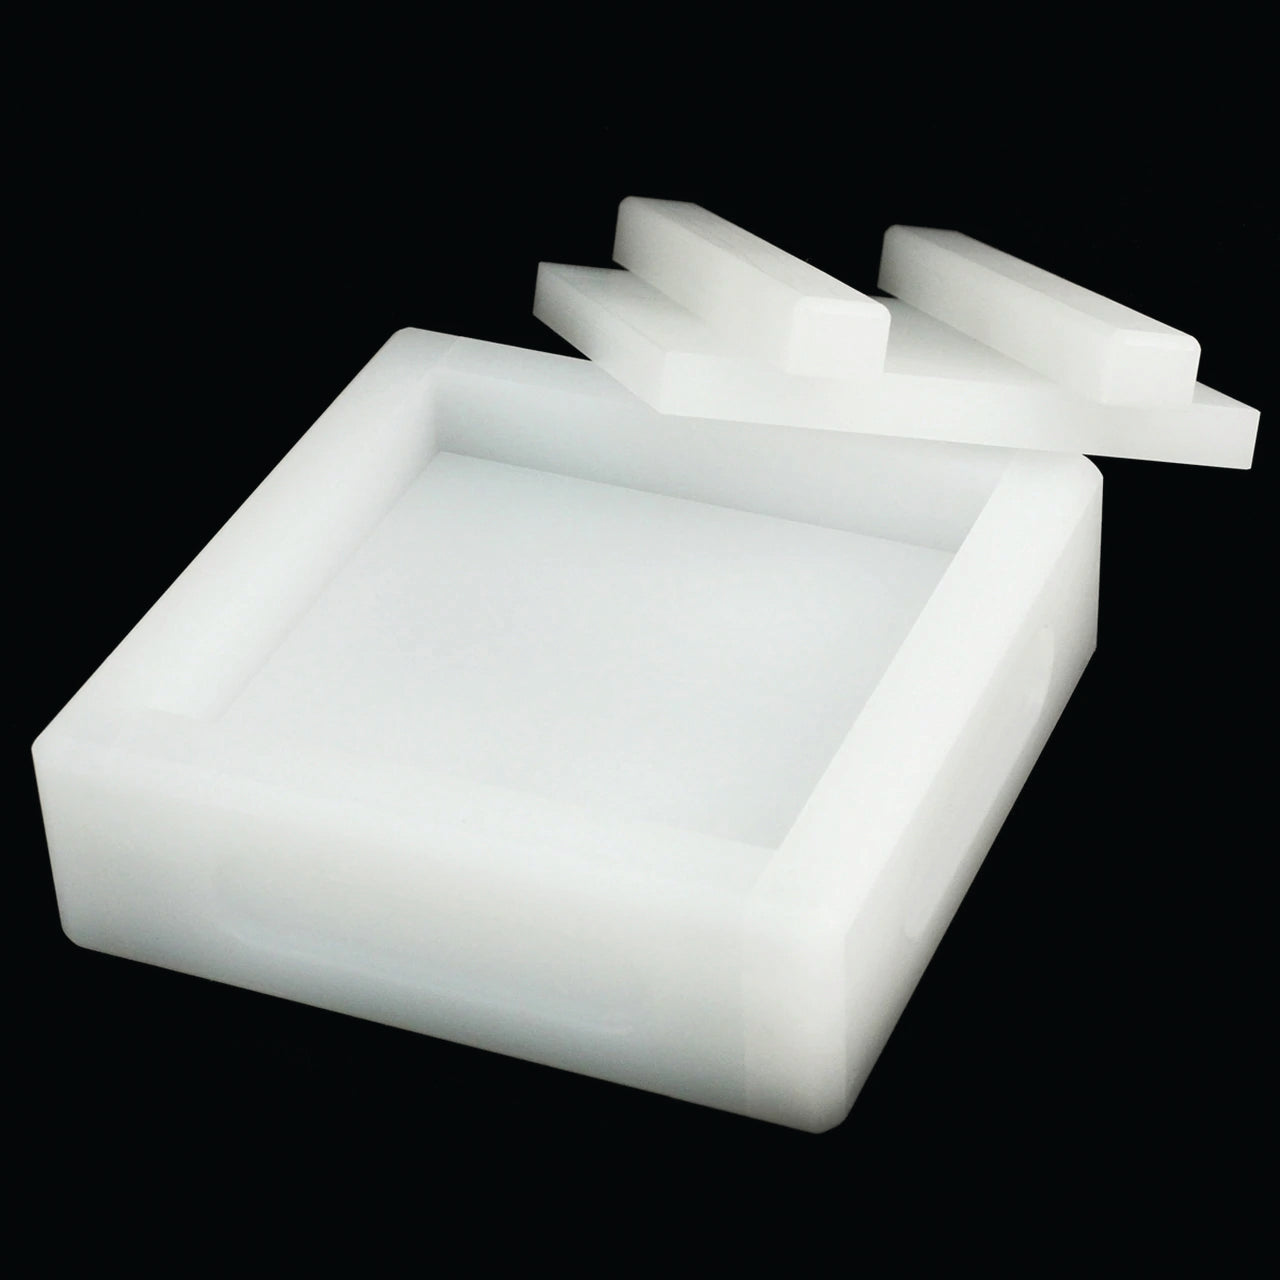 "Plastic Sushi Mold for Oshizushi Pressed Sushi 9"" x 9"" x 4"" (SKU: 90074)"